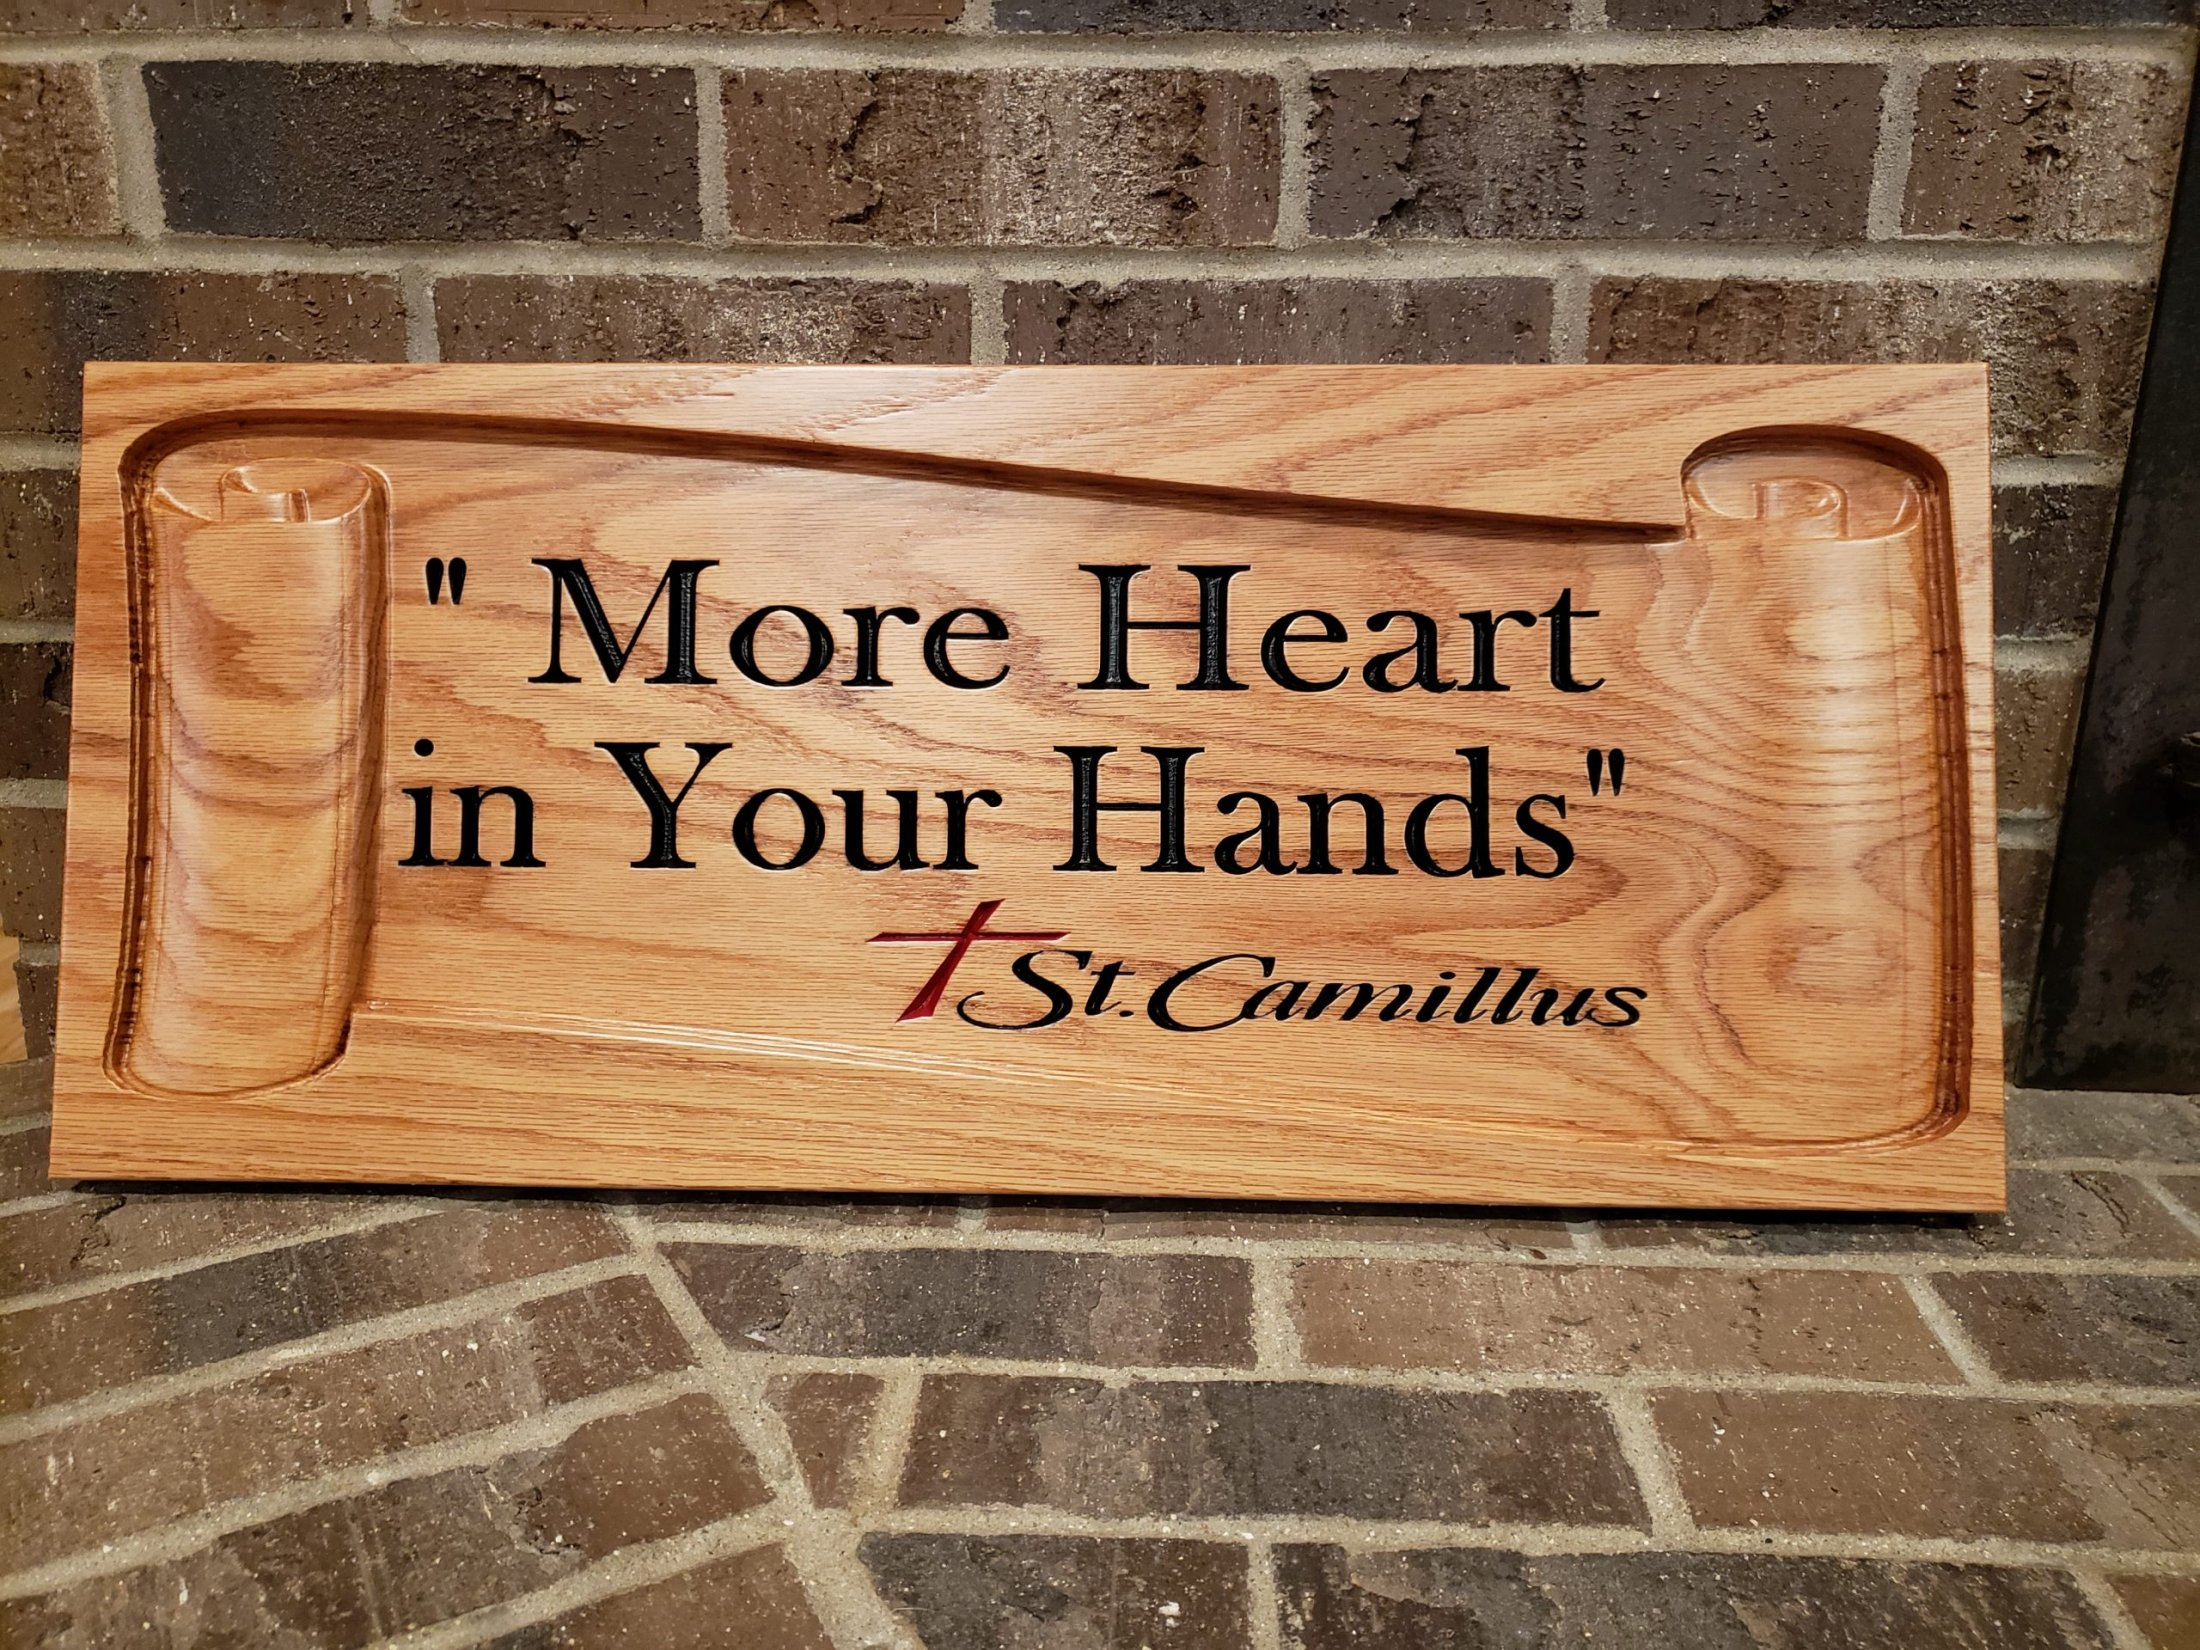 Custom Oak Wood Carving